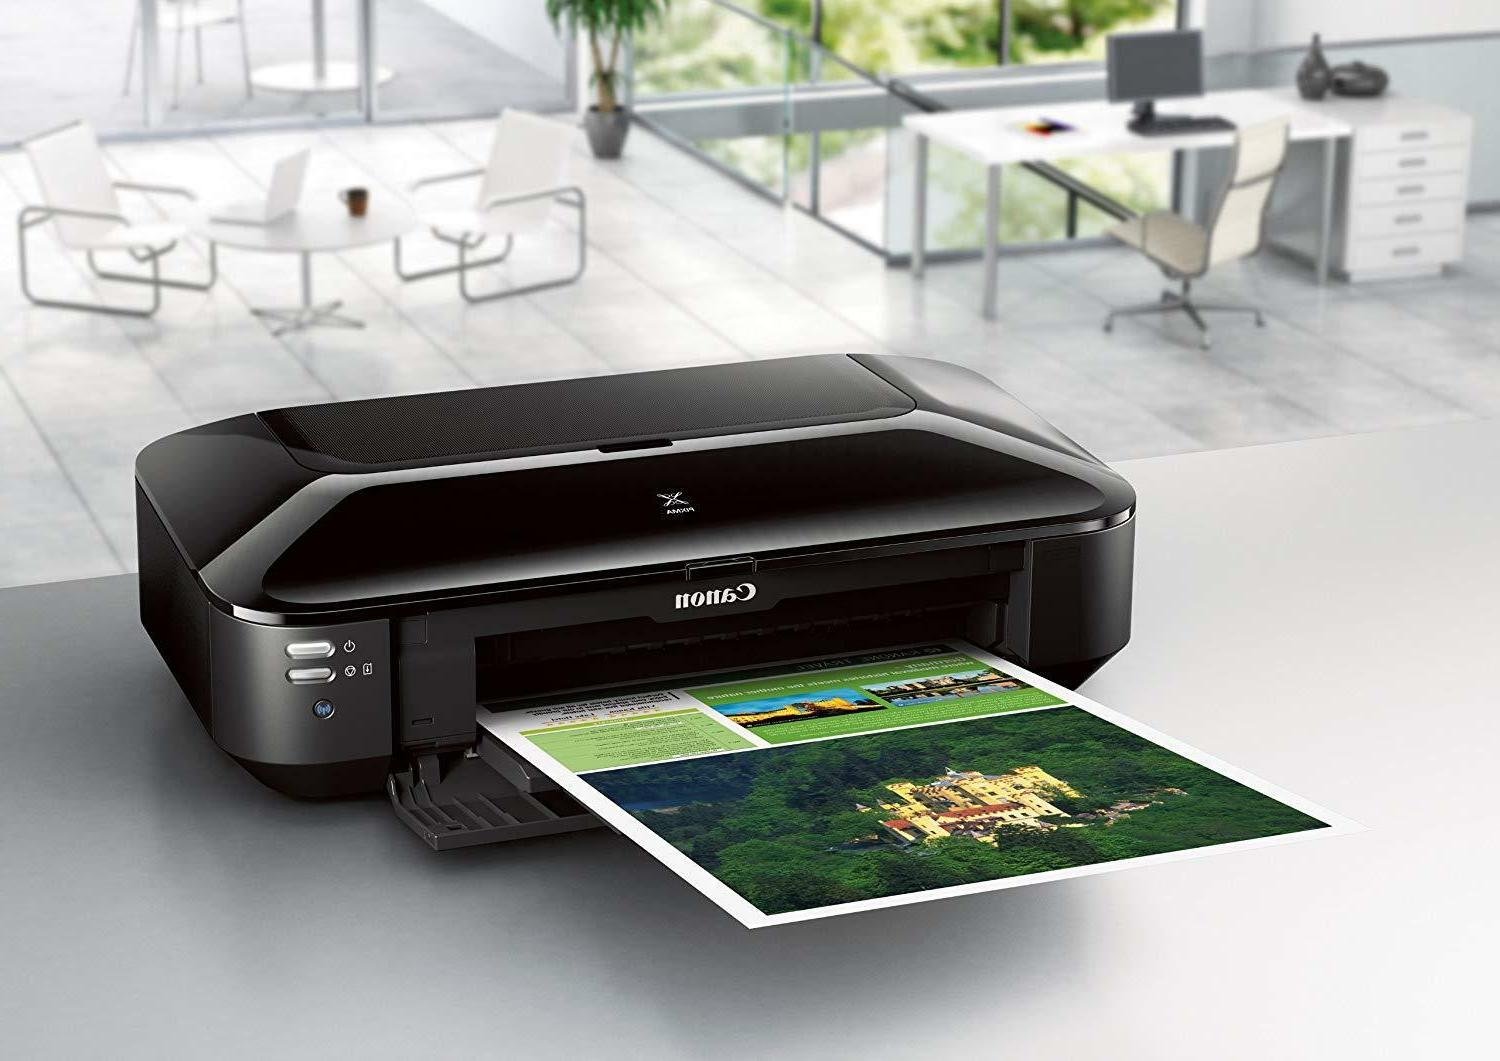 CANON Business Printer and Cloud